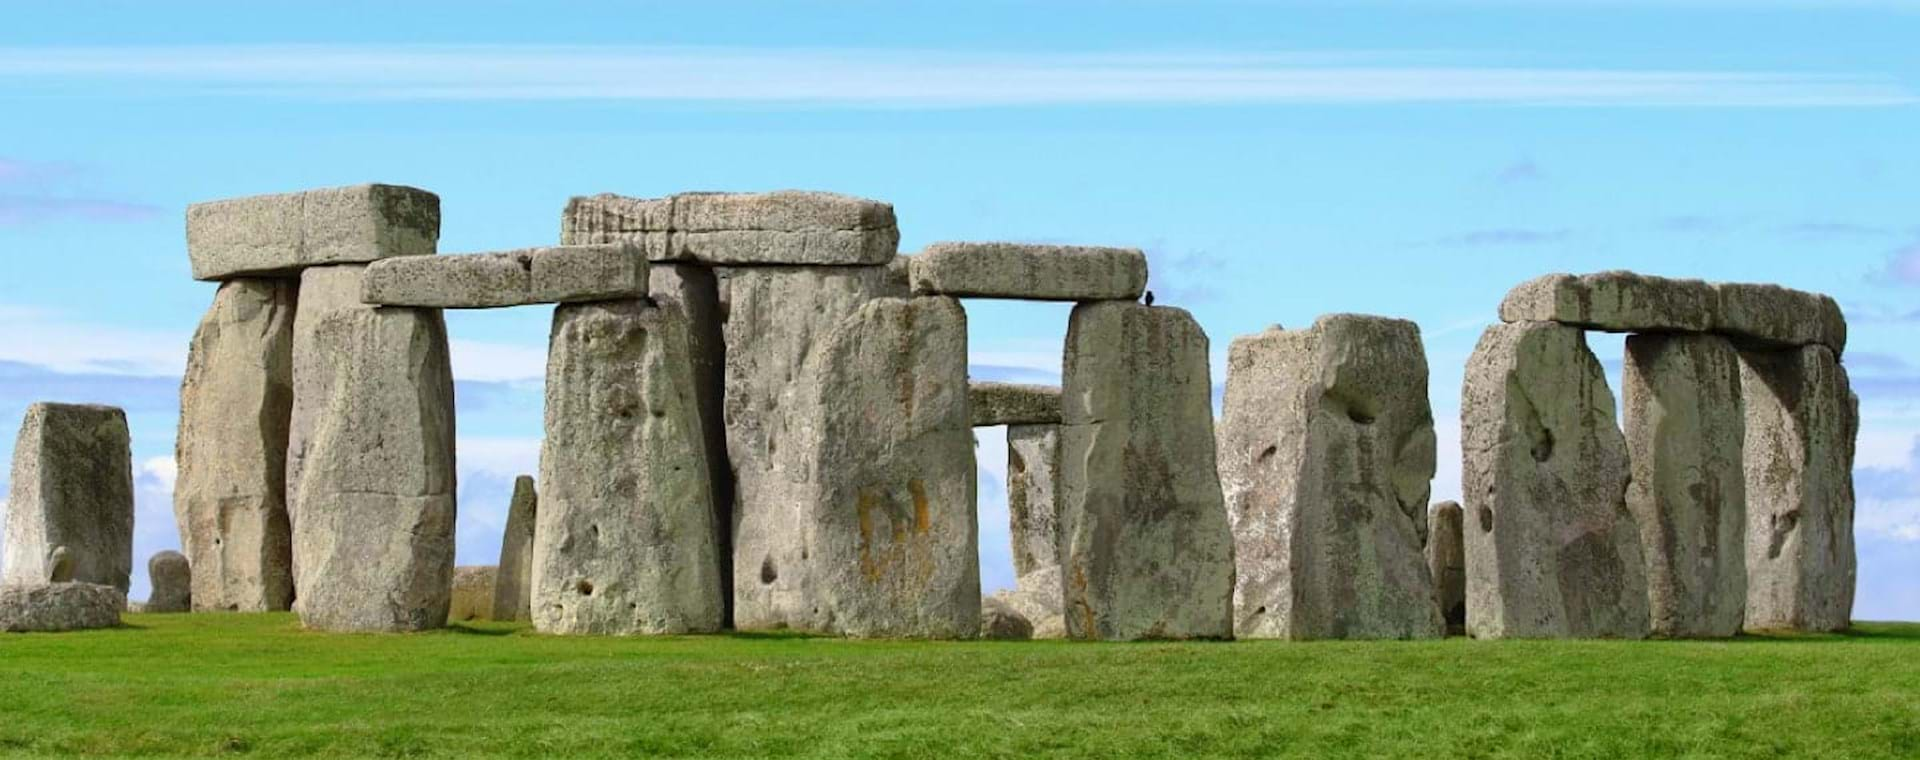 Day Trip: Stonehenge, Bath, & Windsor Castle Tour from London